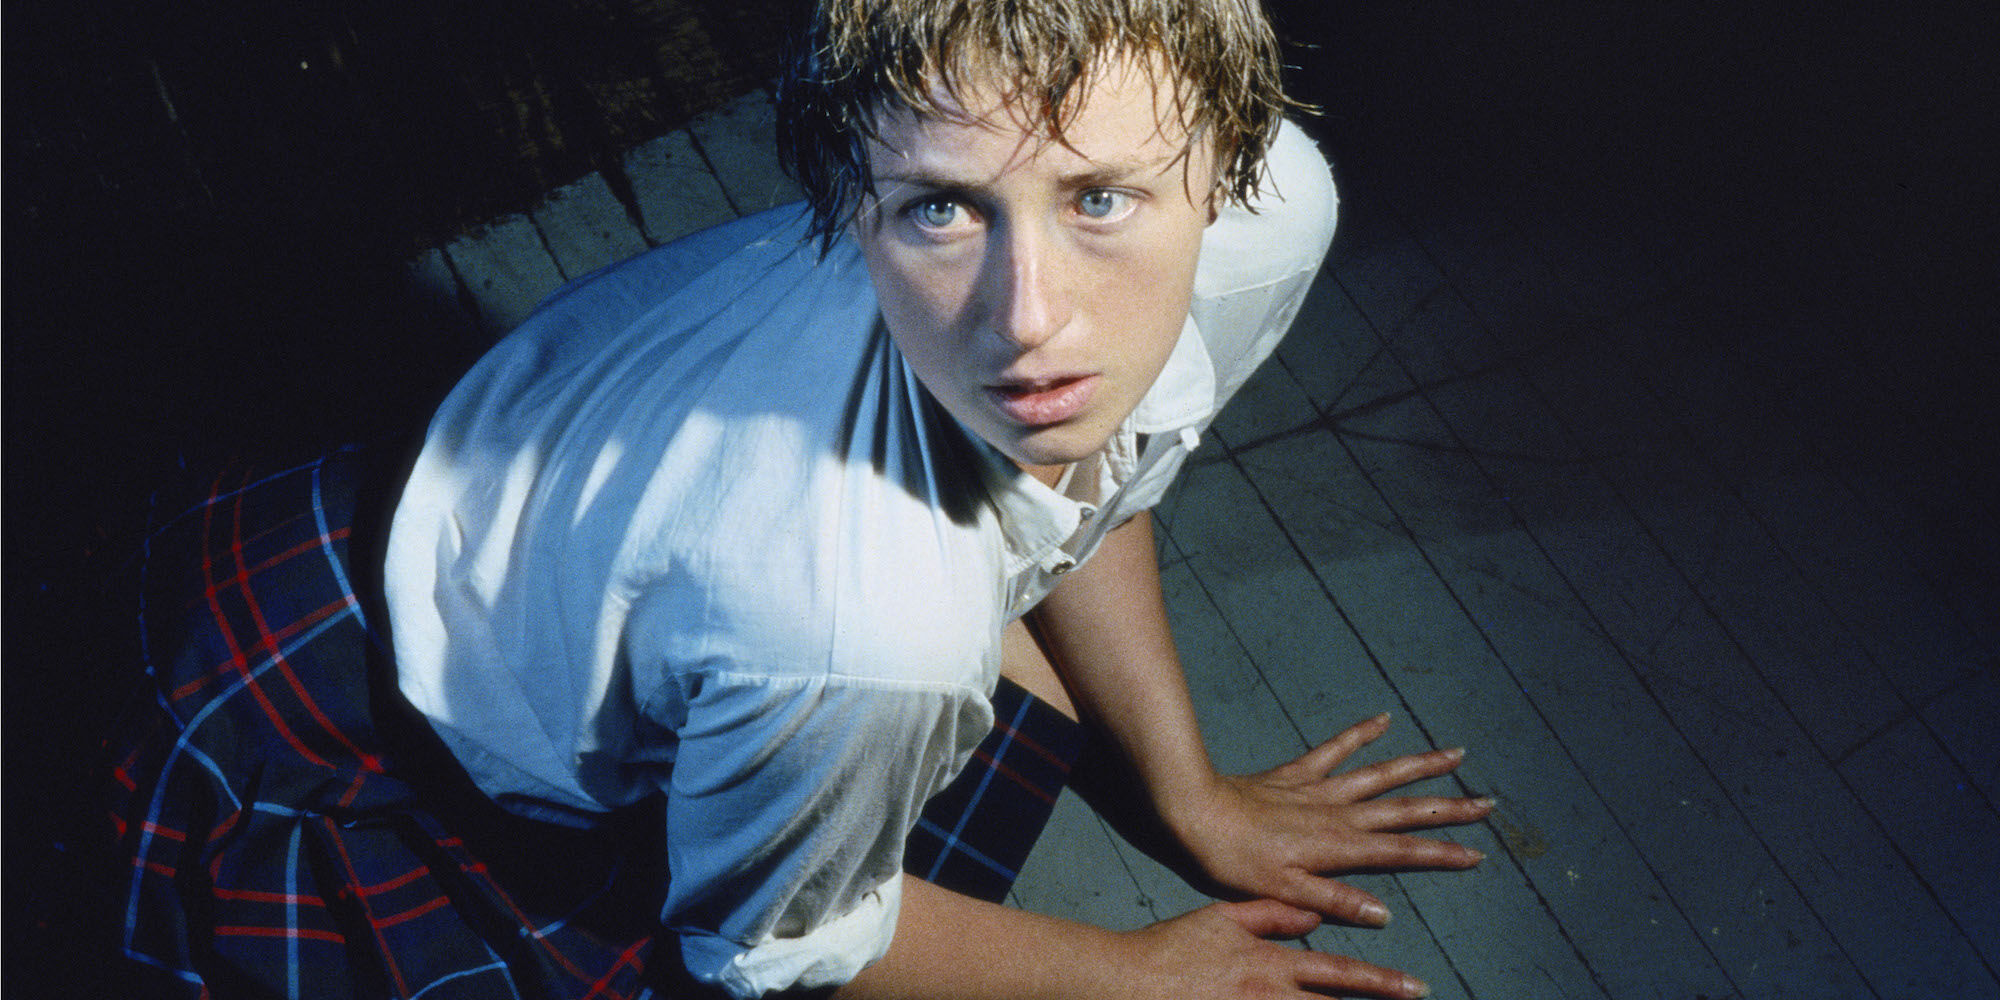 Cindy Sherman, Untitled #92, 1981. Courtesy of the artist and Metro Pictures, New York.